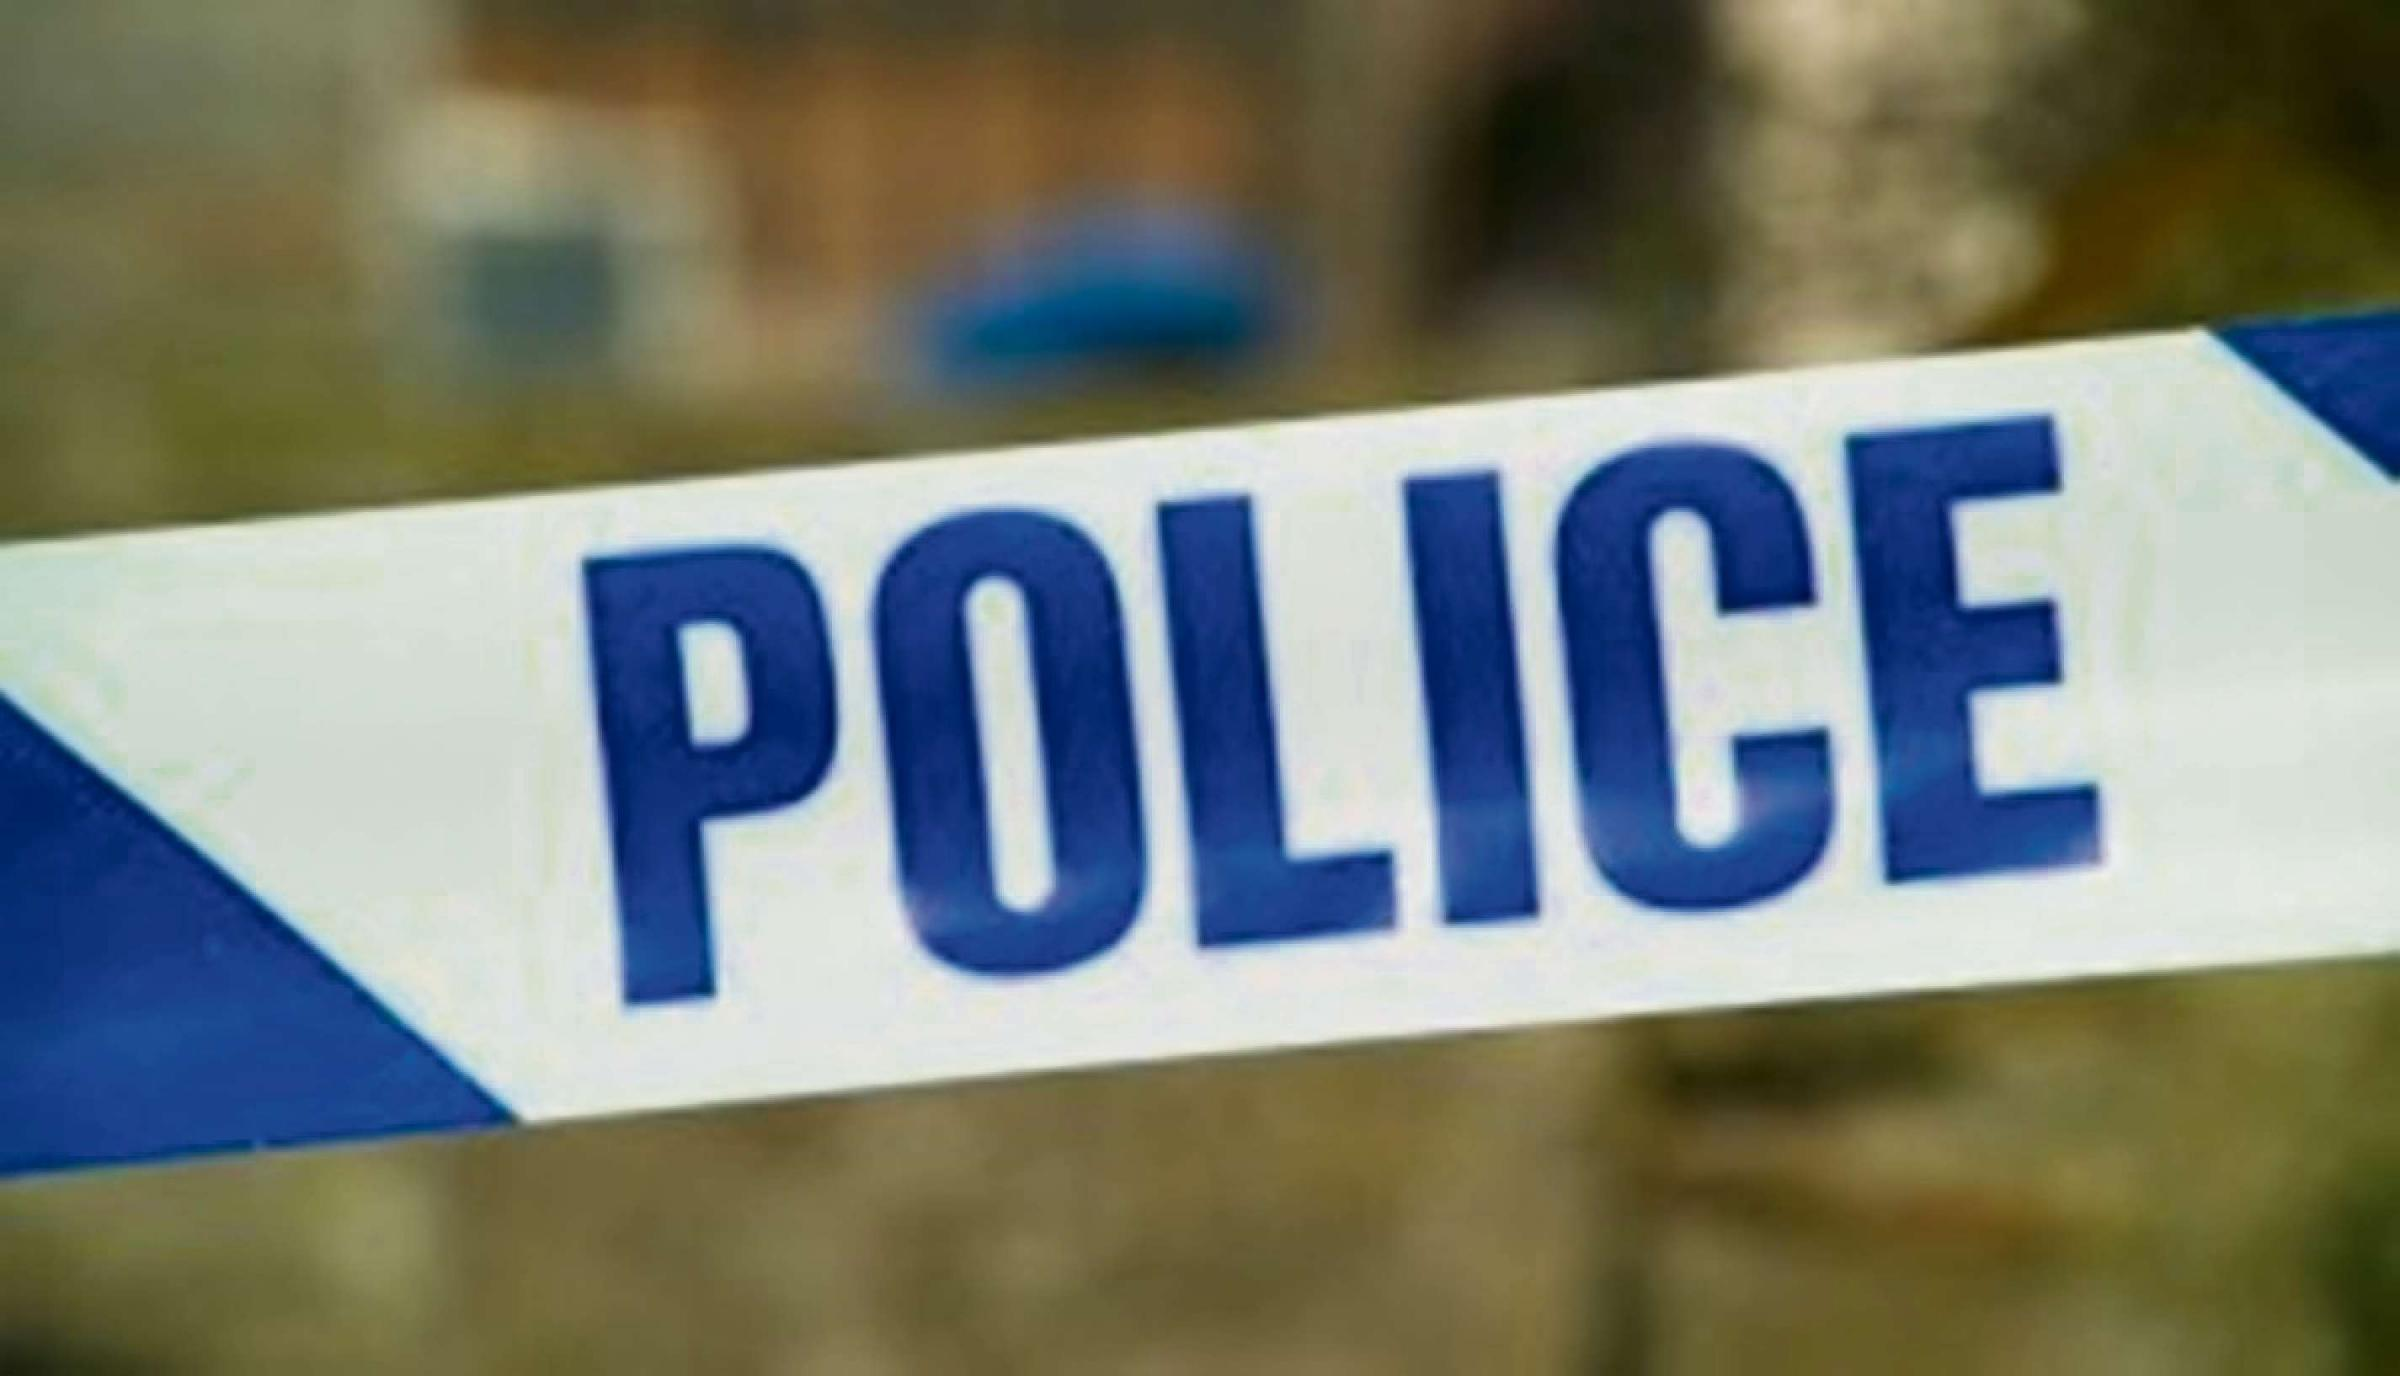 Police are appealing for information following a fatal road crash near Kildwick